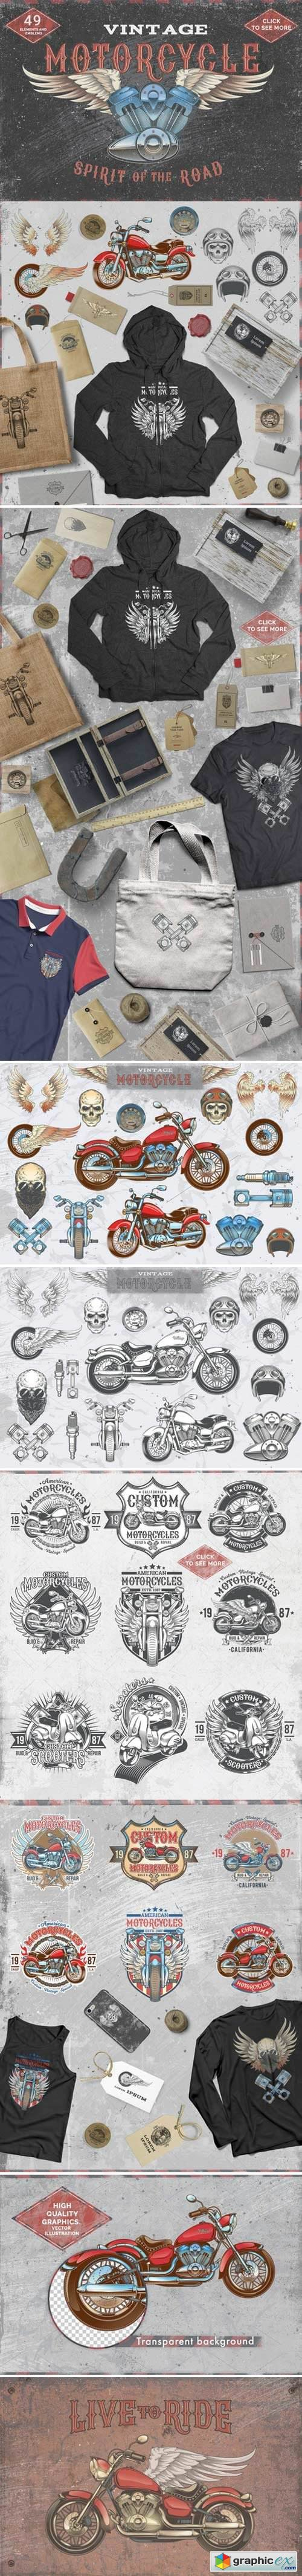 Set Vintage motorcycle labels